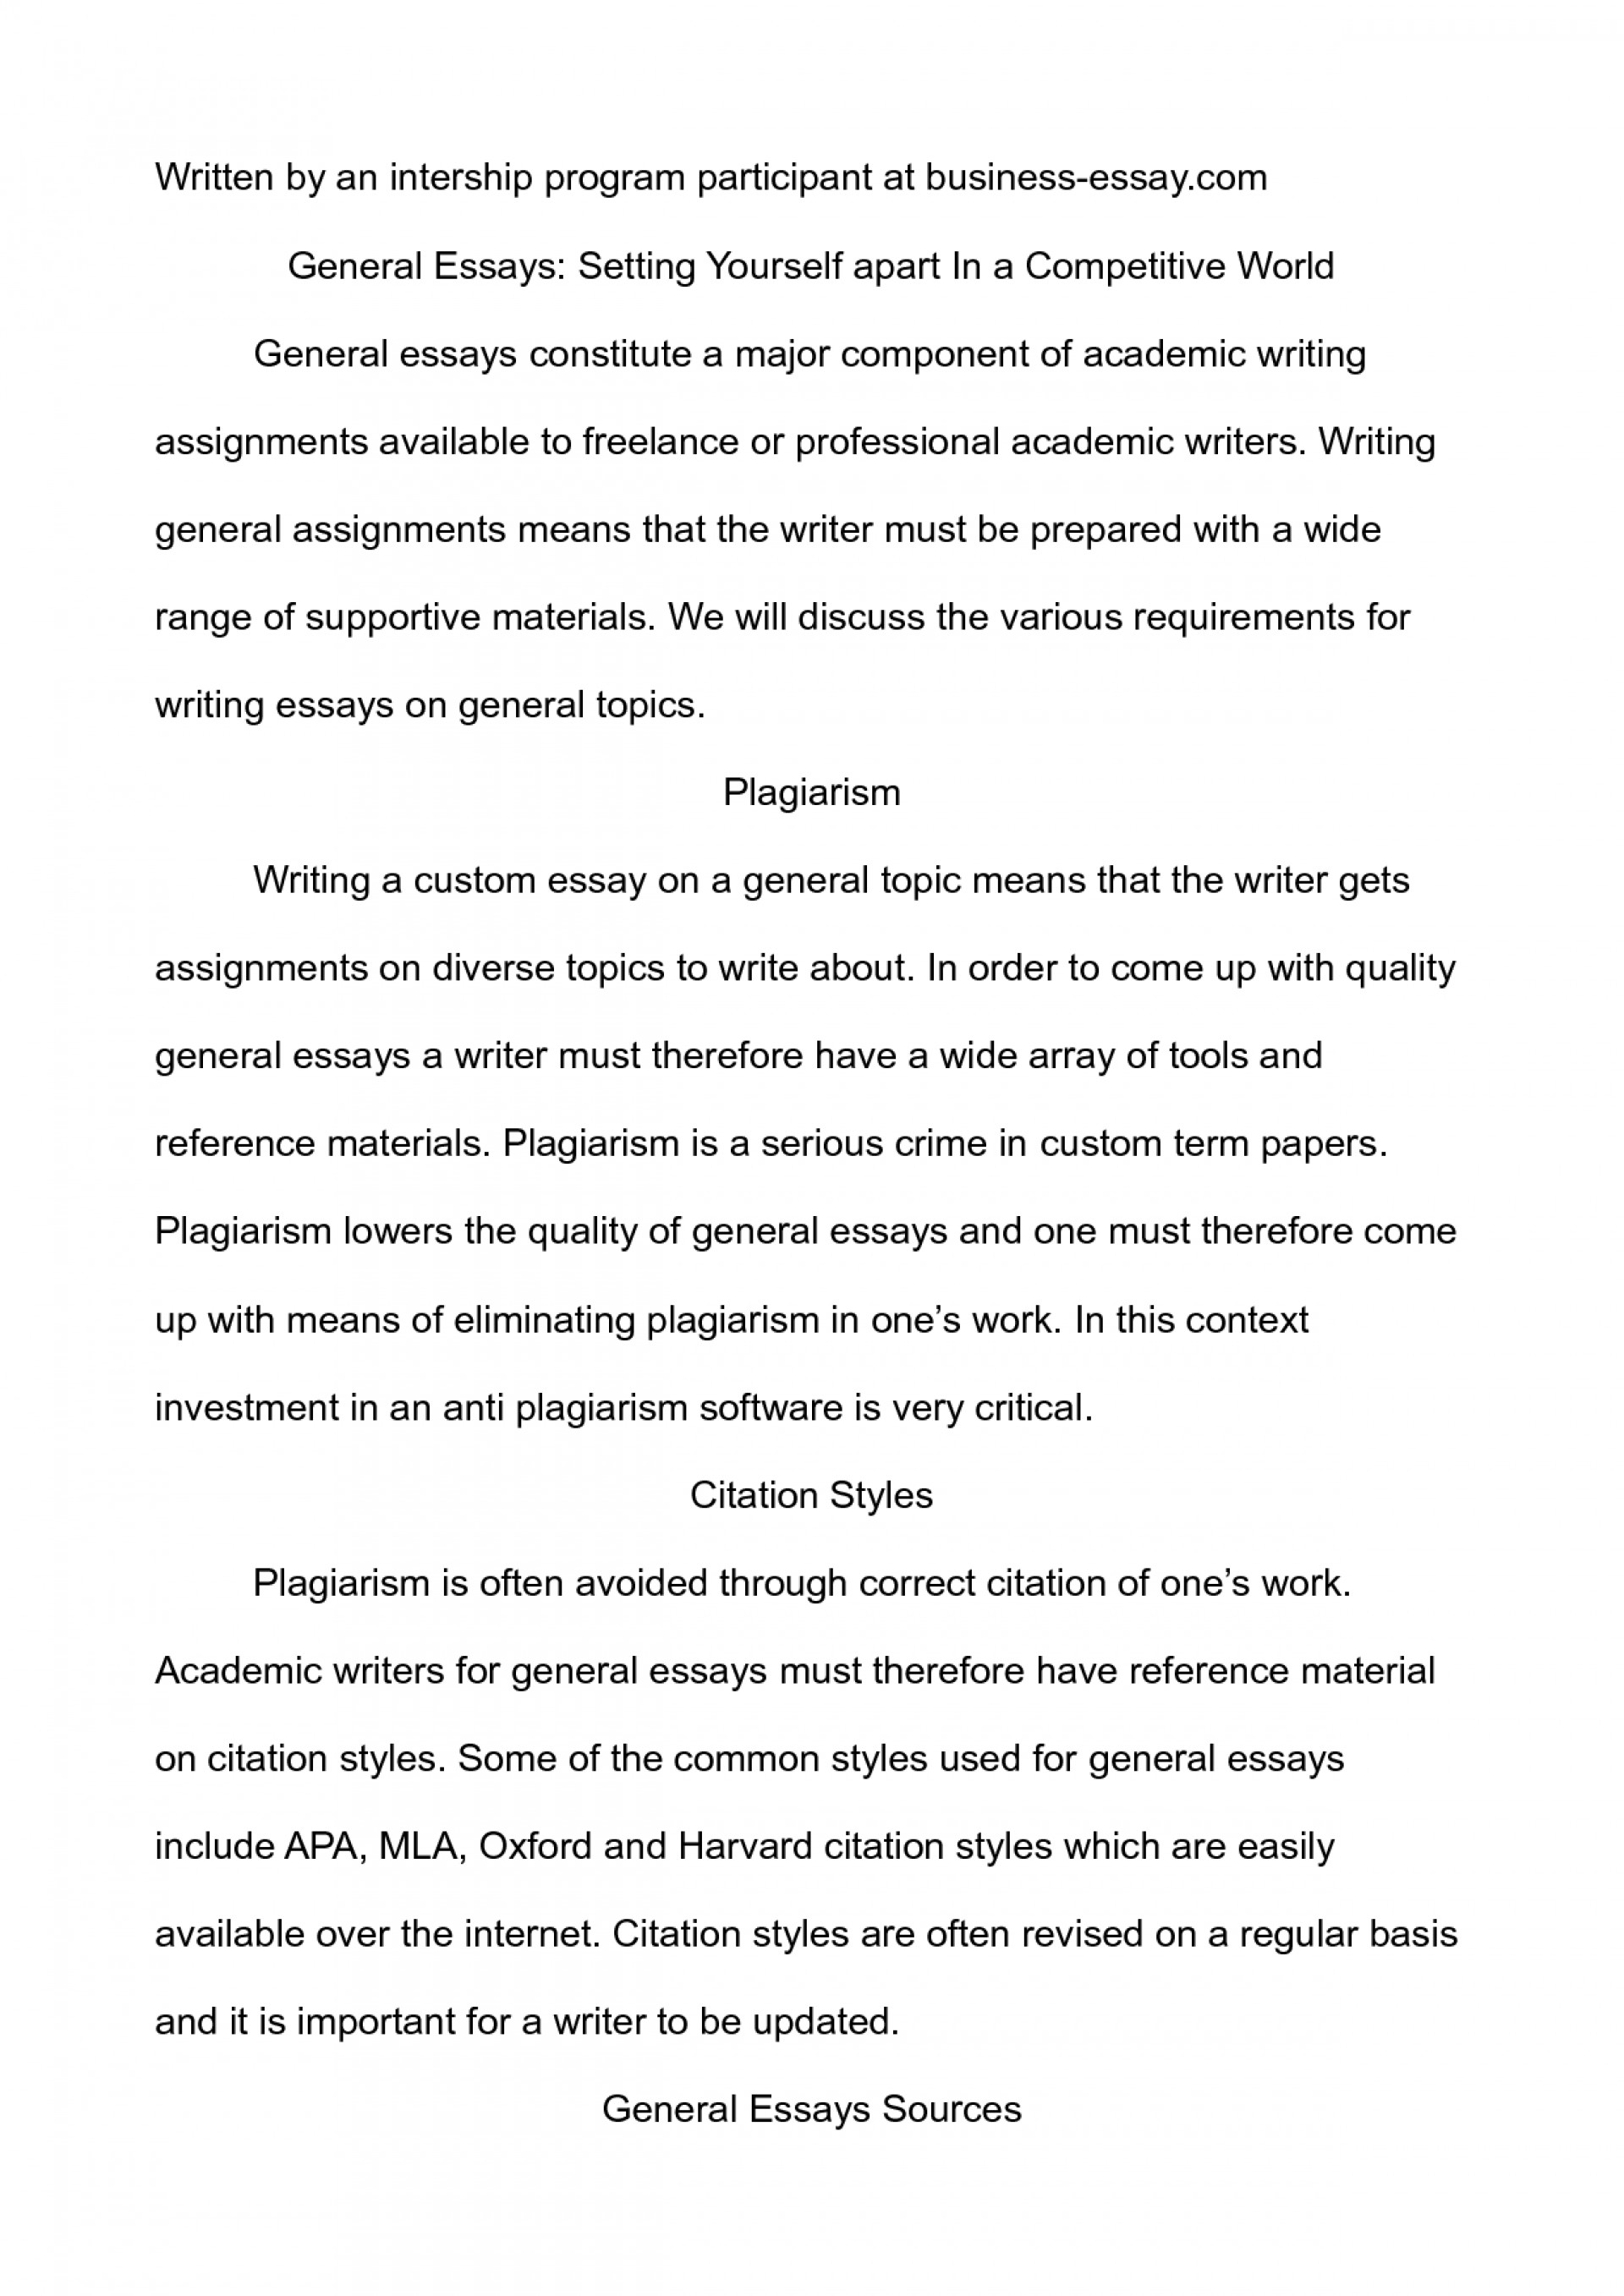 016 Essay Example Pretty Describe Myself Sample Spm Template Fearsome About On In French With English Translation Introduction 1920